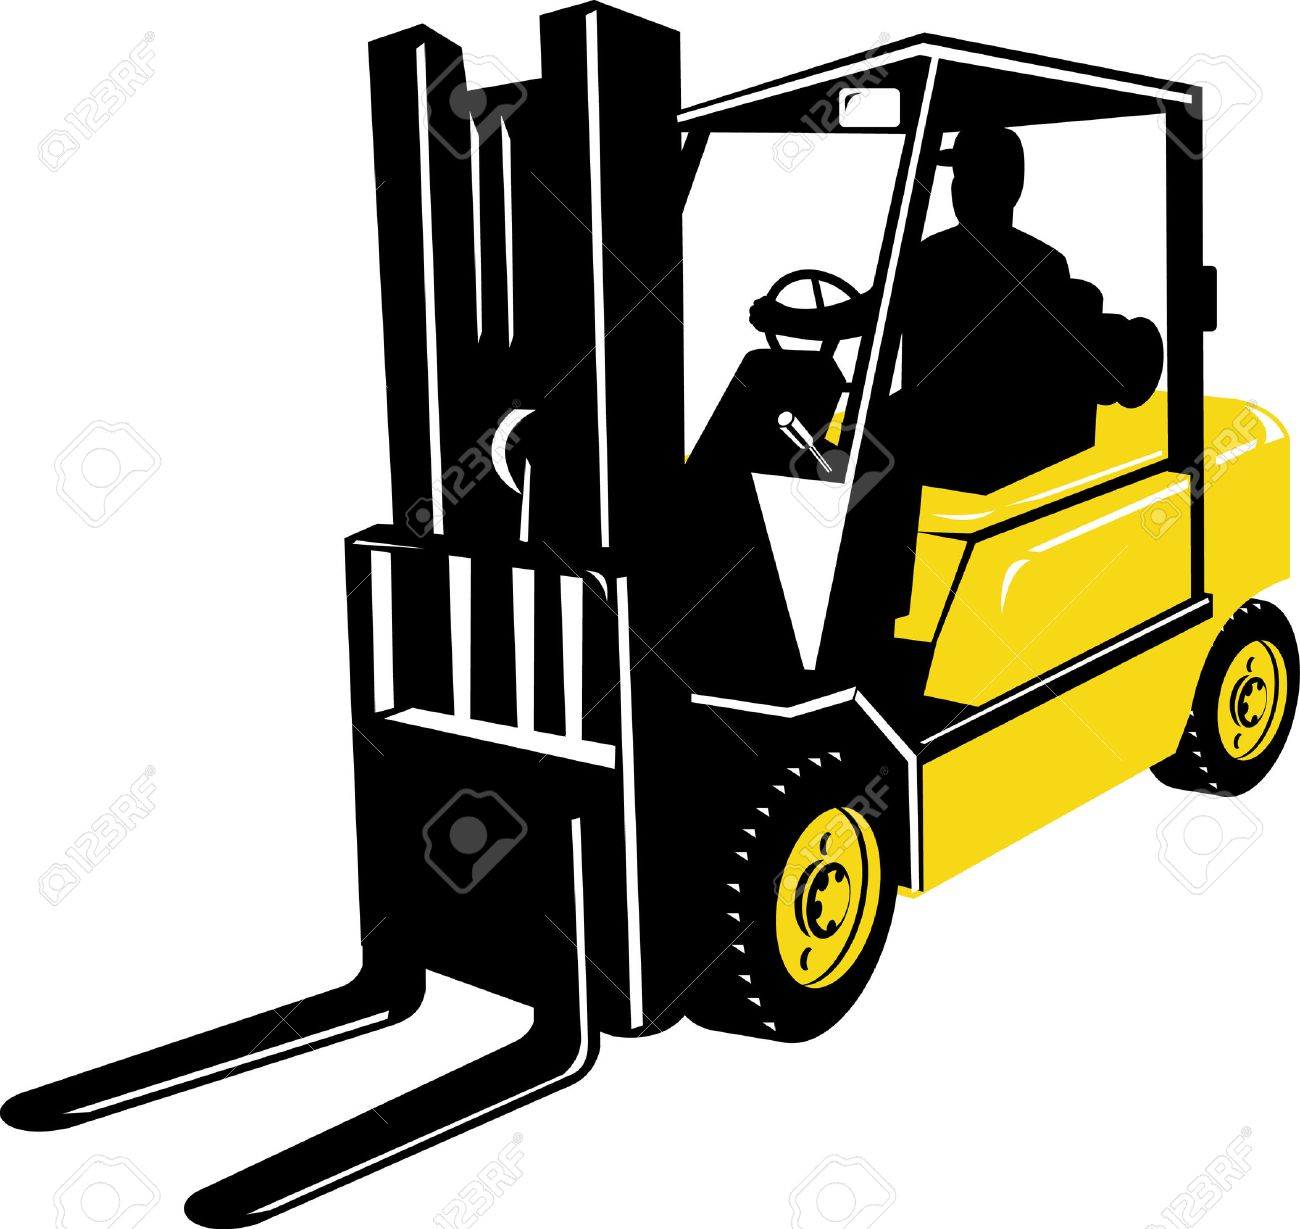 Free forklift clipart 3 » Clipart Station.